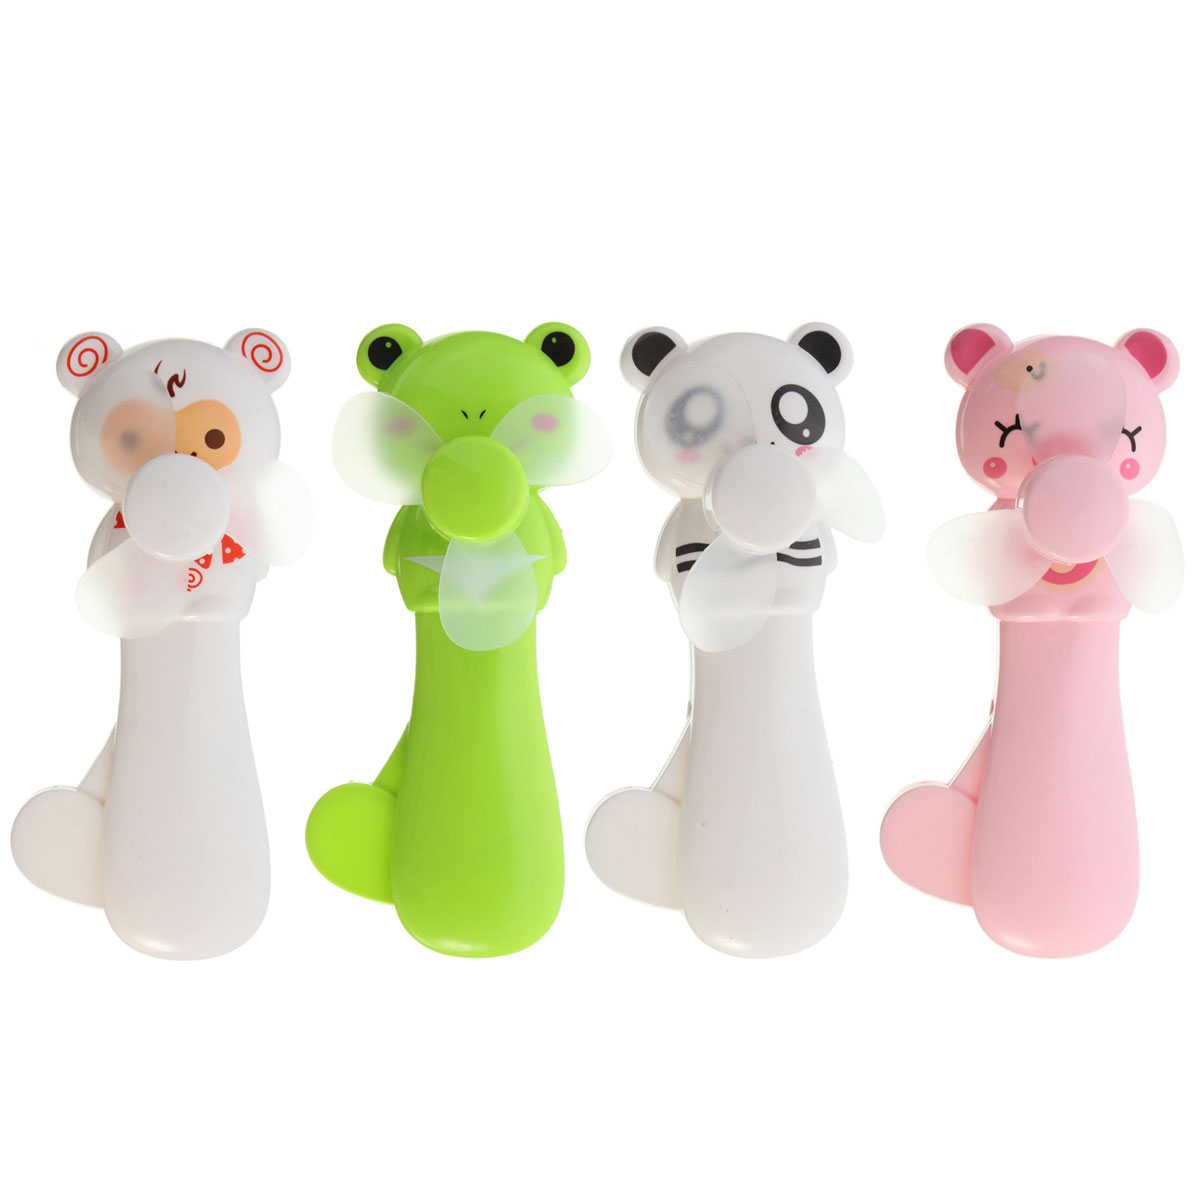 NEW Portable Cartoon Cute Lovely Animals Panda Bear Pig Mini Cool Hand Pressure Fans Baby Children Kids Great Gift Present Toy(China (Mainland))